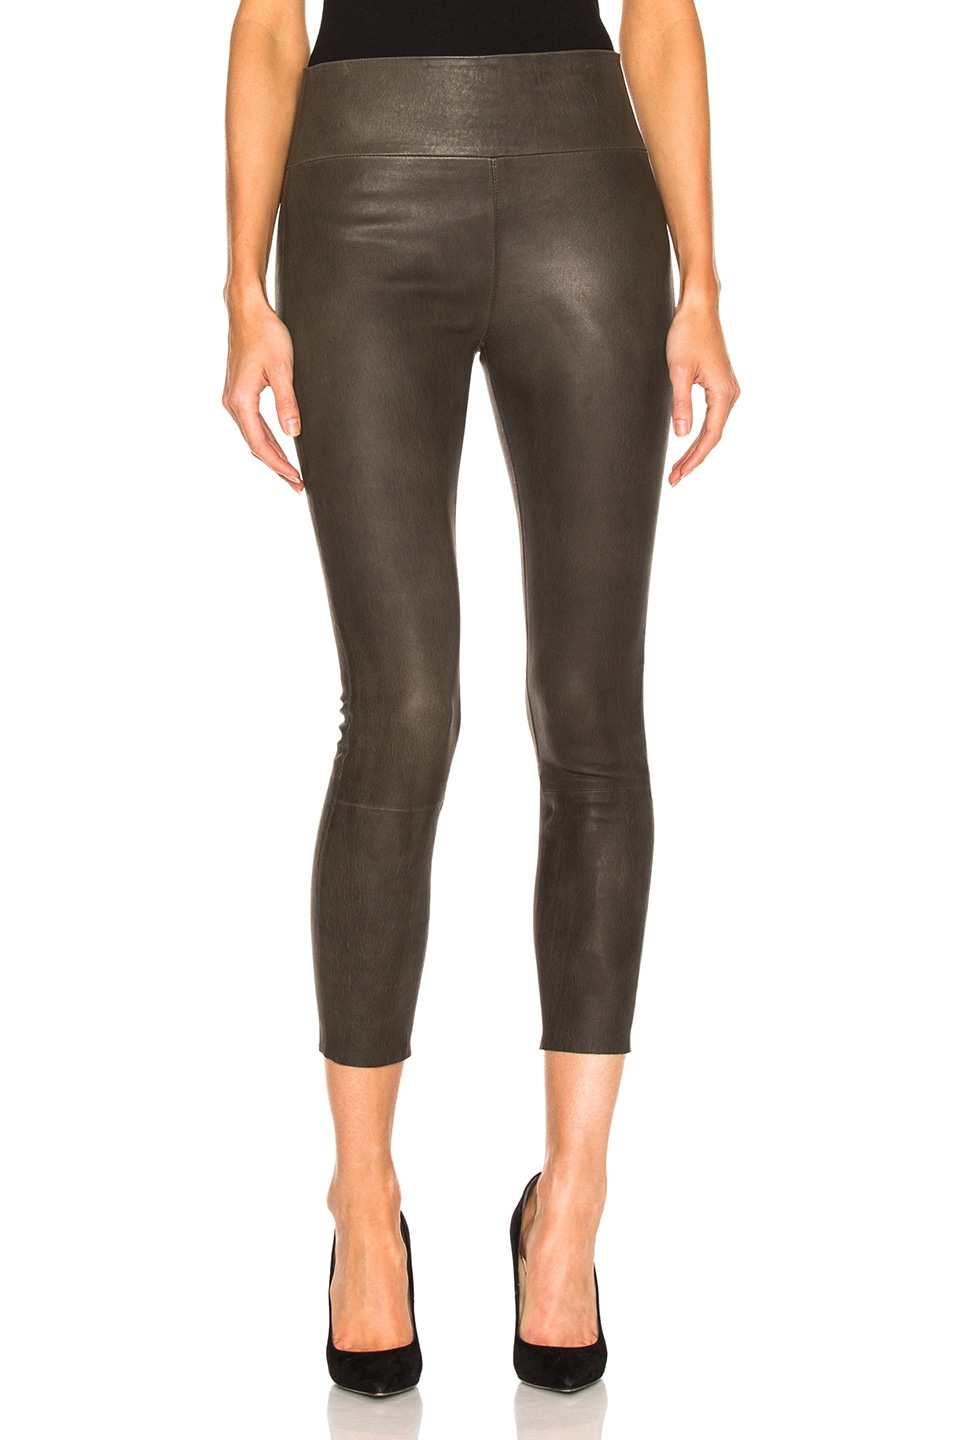 2f70e3bfd5b4eb Image 1 of SPRWMN High Waist 3/4 Leather Legging in Army